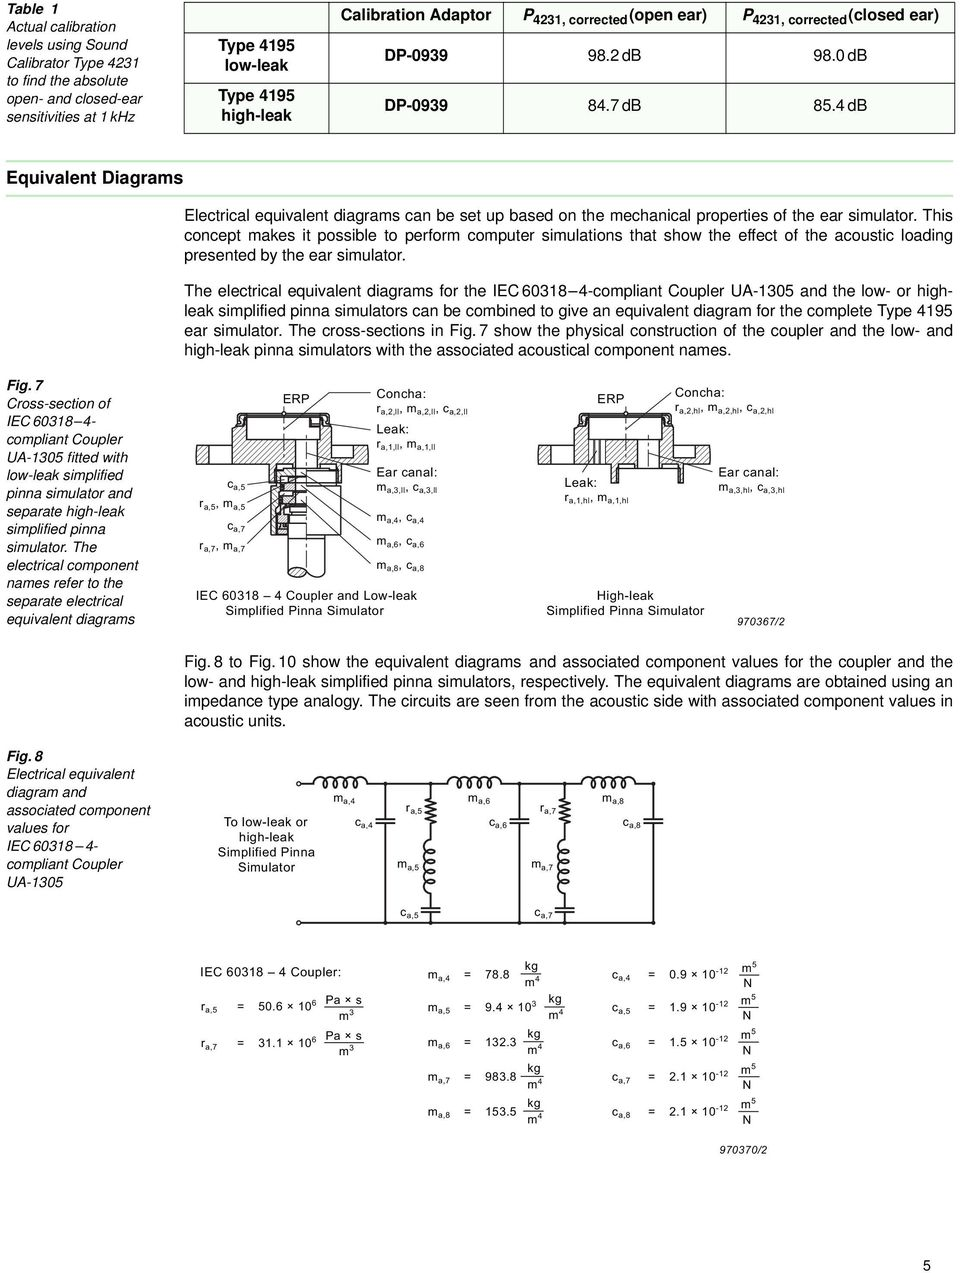 Application Note Ear Simulator For Telephonometry Use Of Wideband Residential Wiring 4 Equivalent Diagrams Electrical Can Be Set Up Based On The Mechanical Properties